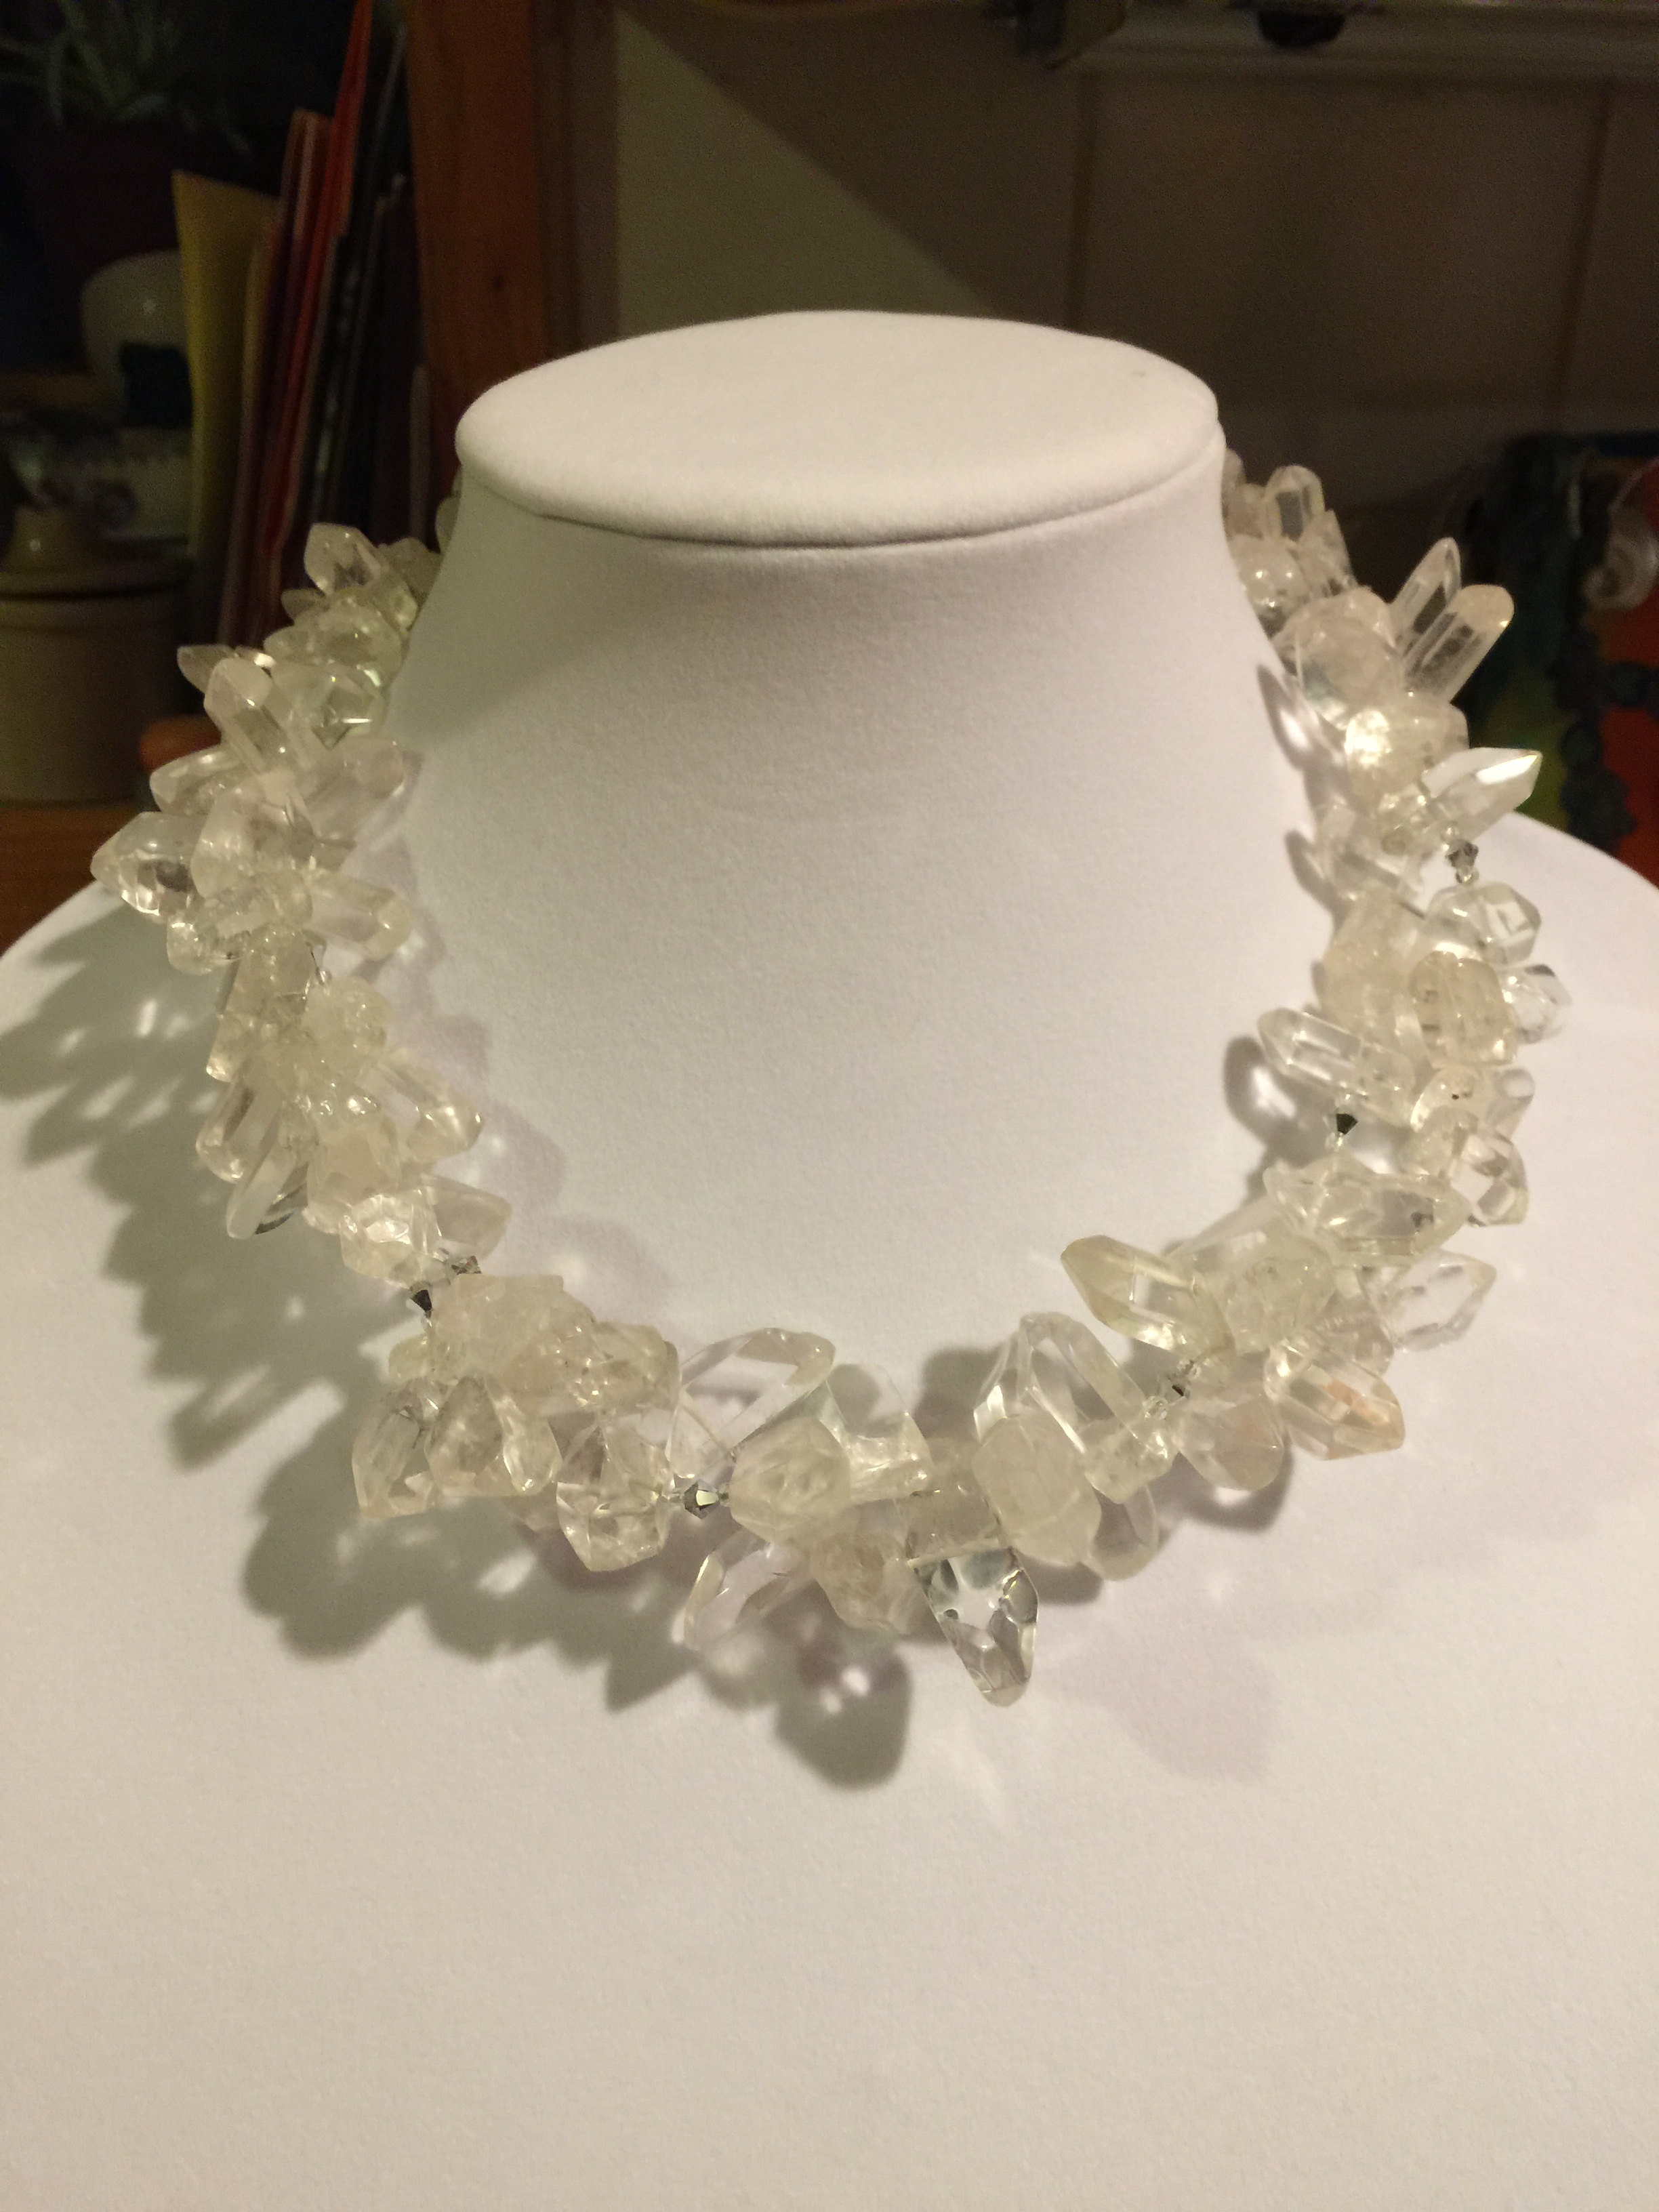 double QUARTZ NECKLACE  Double strand of natural clear quartz crystals, glass beads and a handmade sterling silver clasp for each strand.